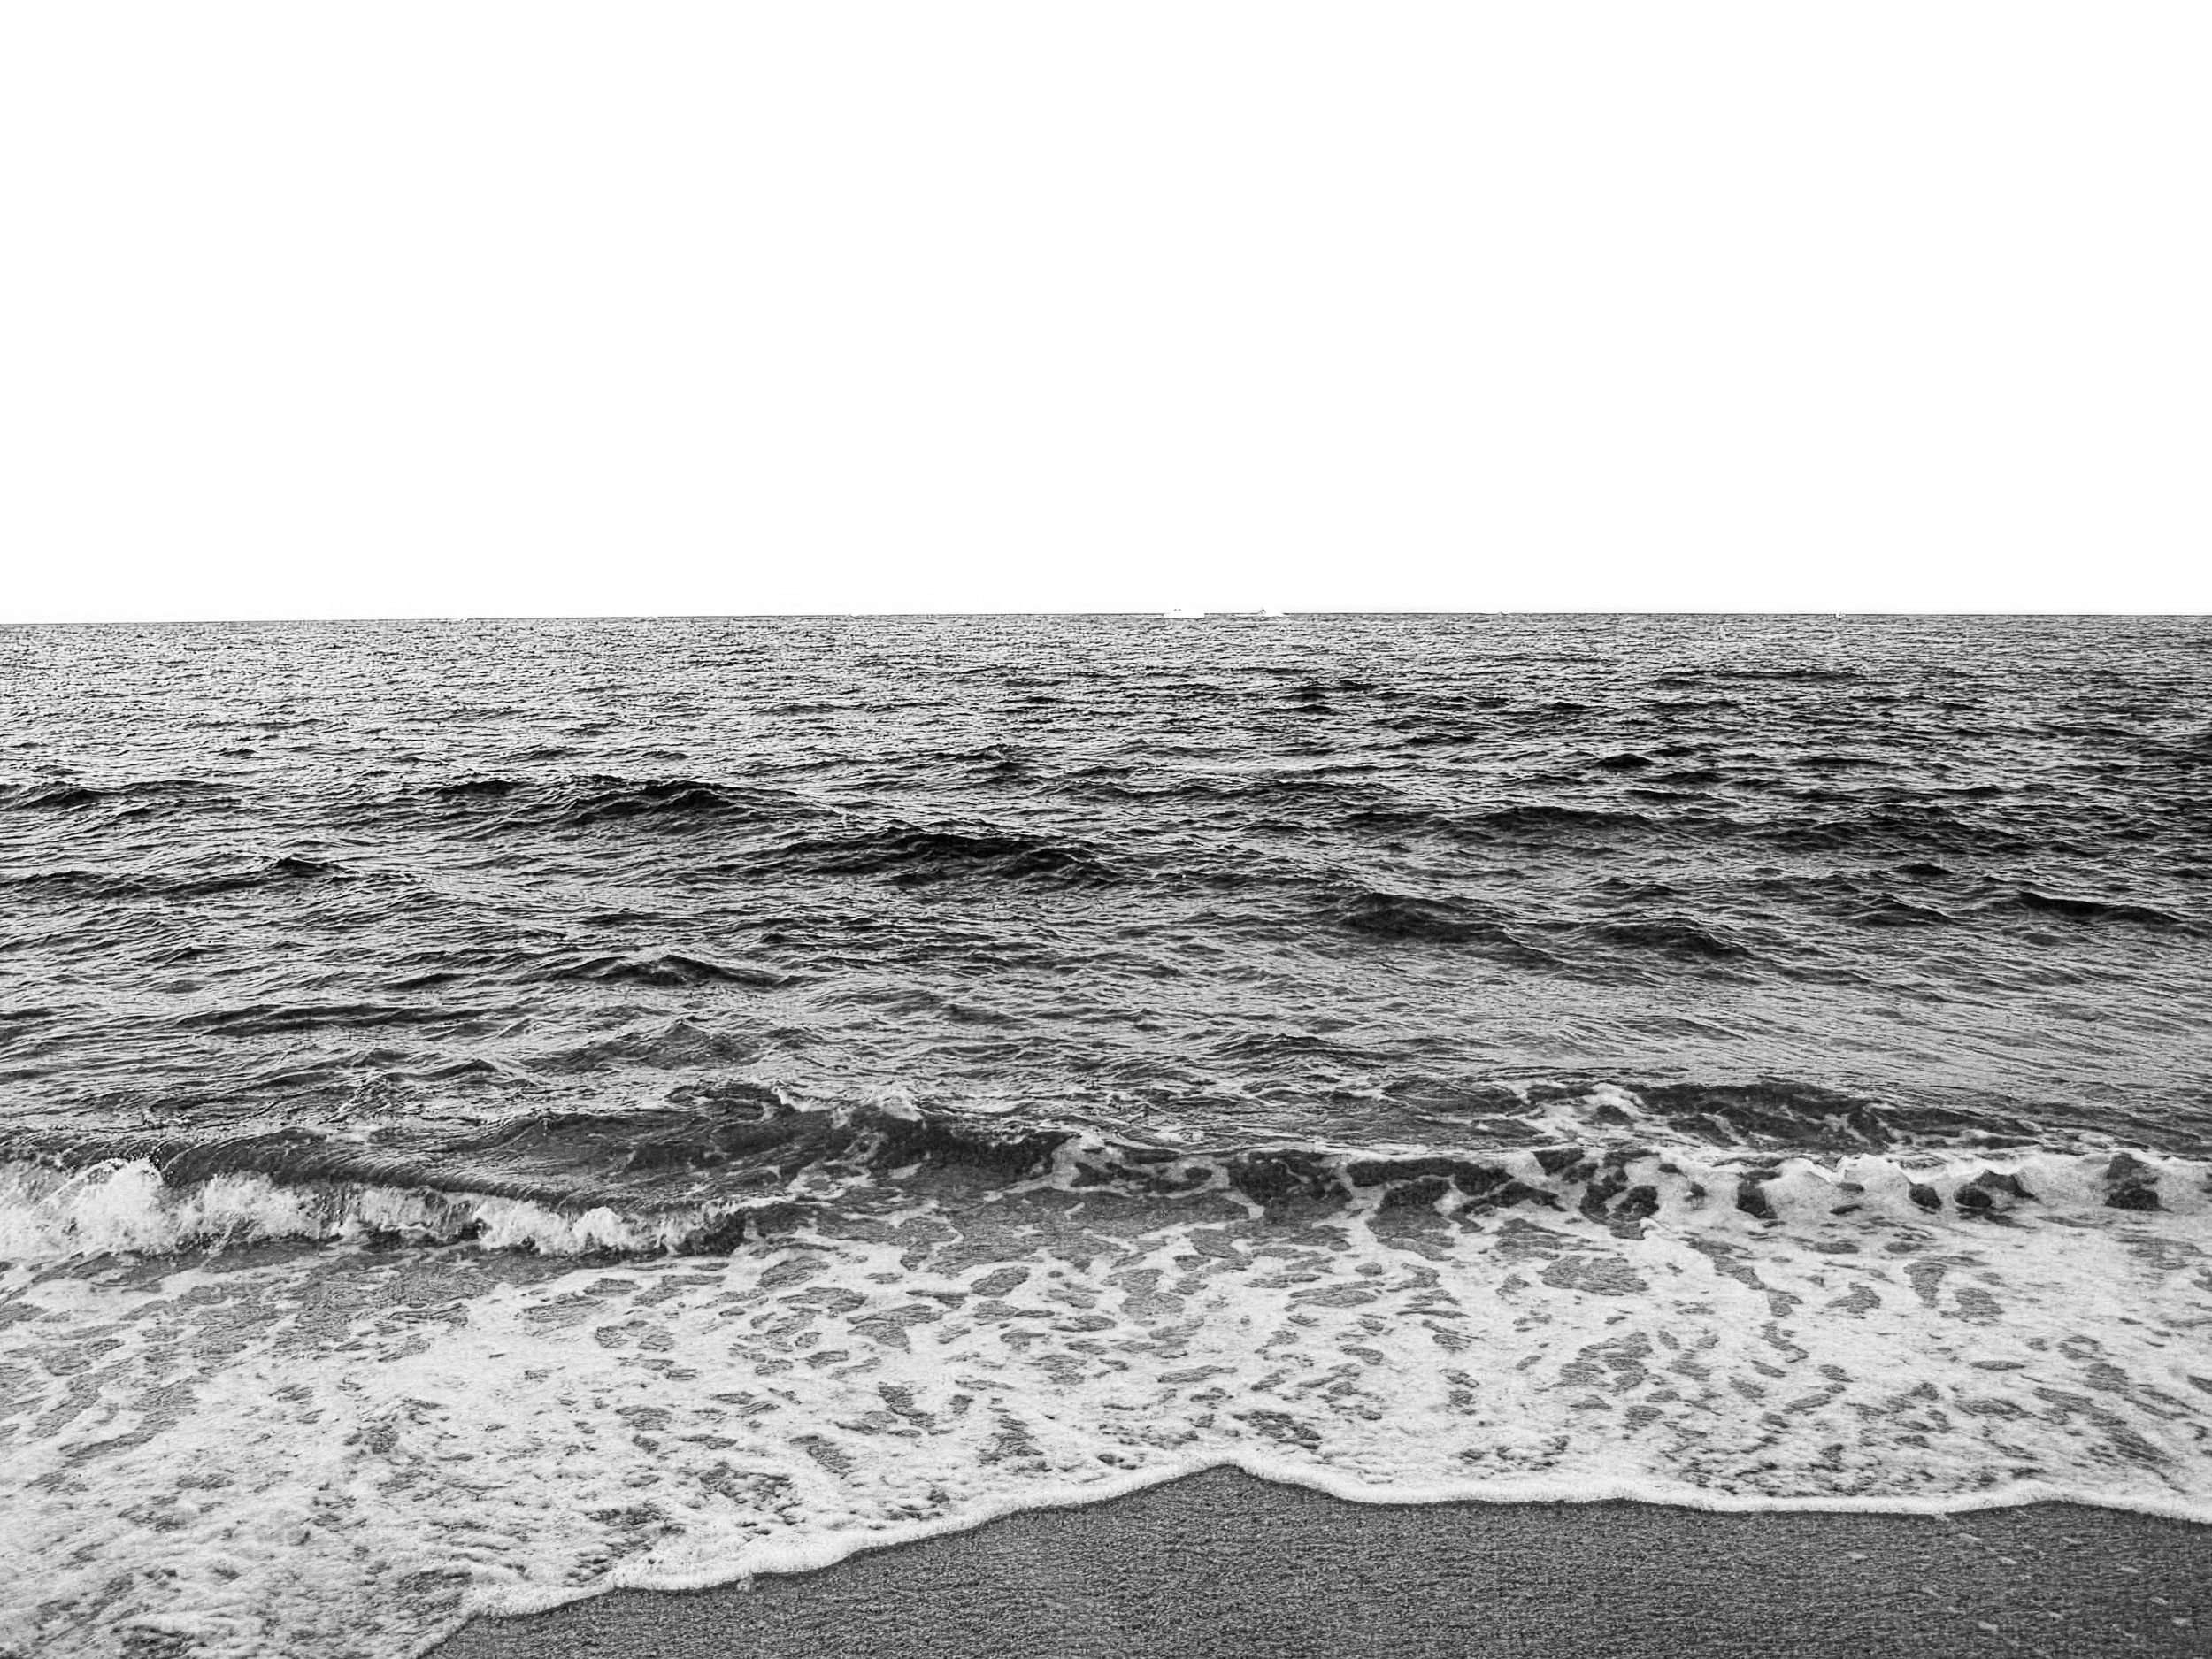 abstract_black_and_white_ocean_photography_2.JPG